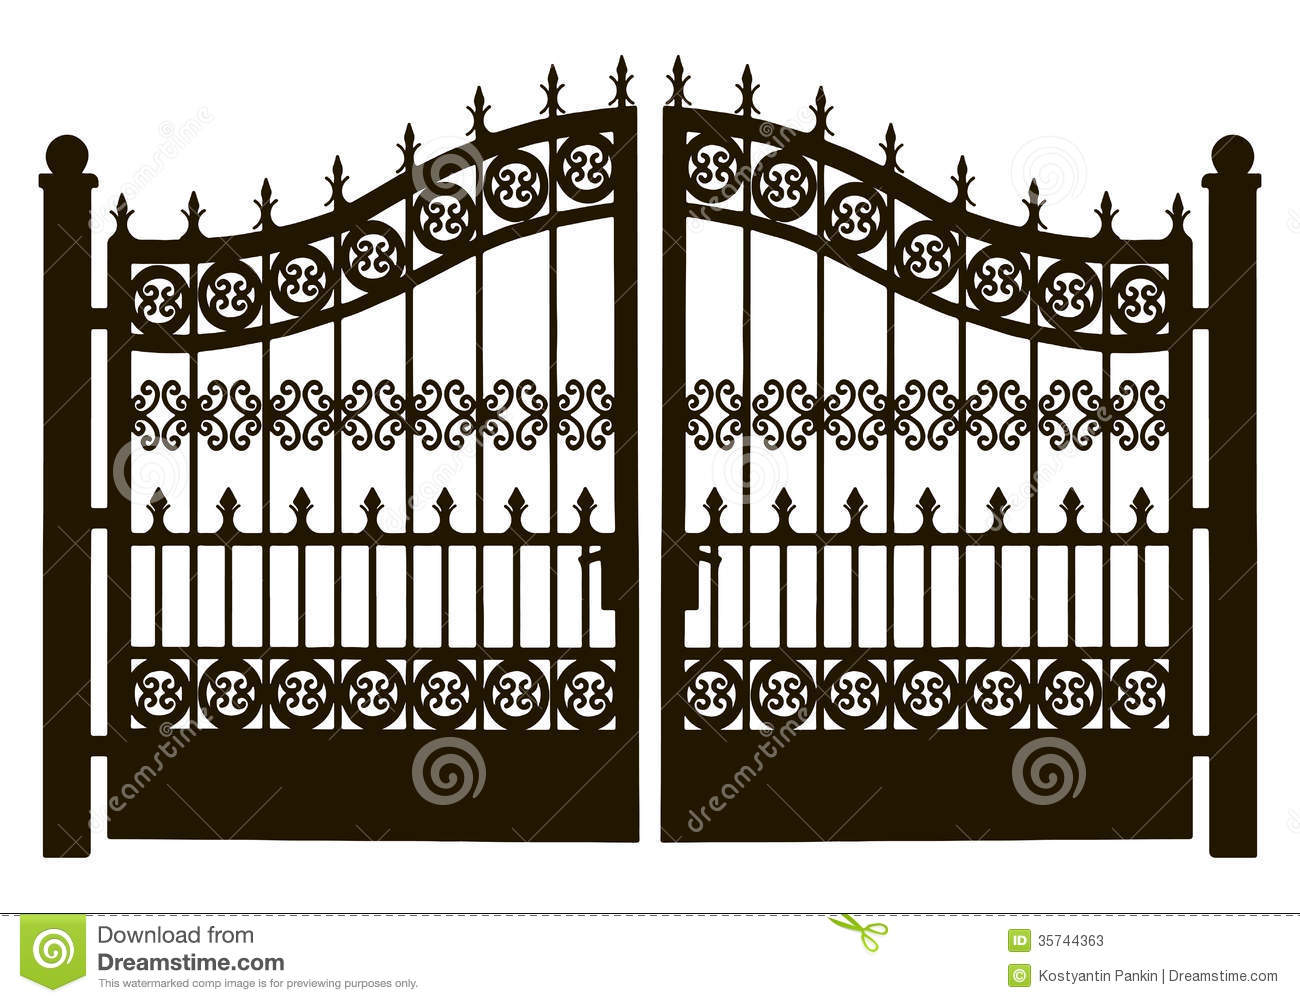 Gate clipart welcome visitor Gate Clipart Free gate%20clipart Images